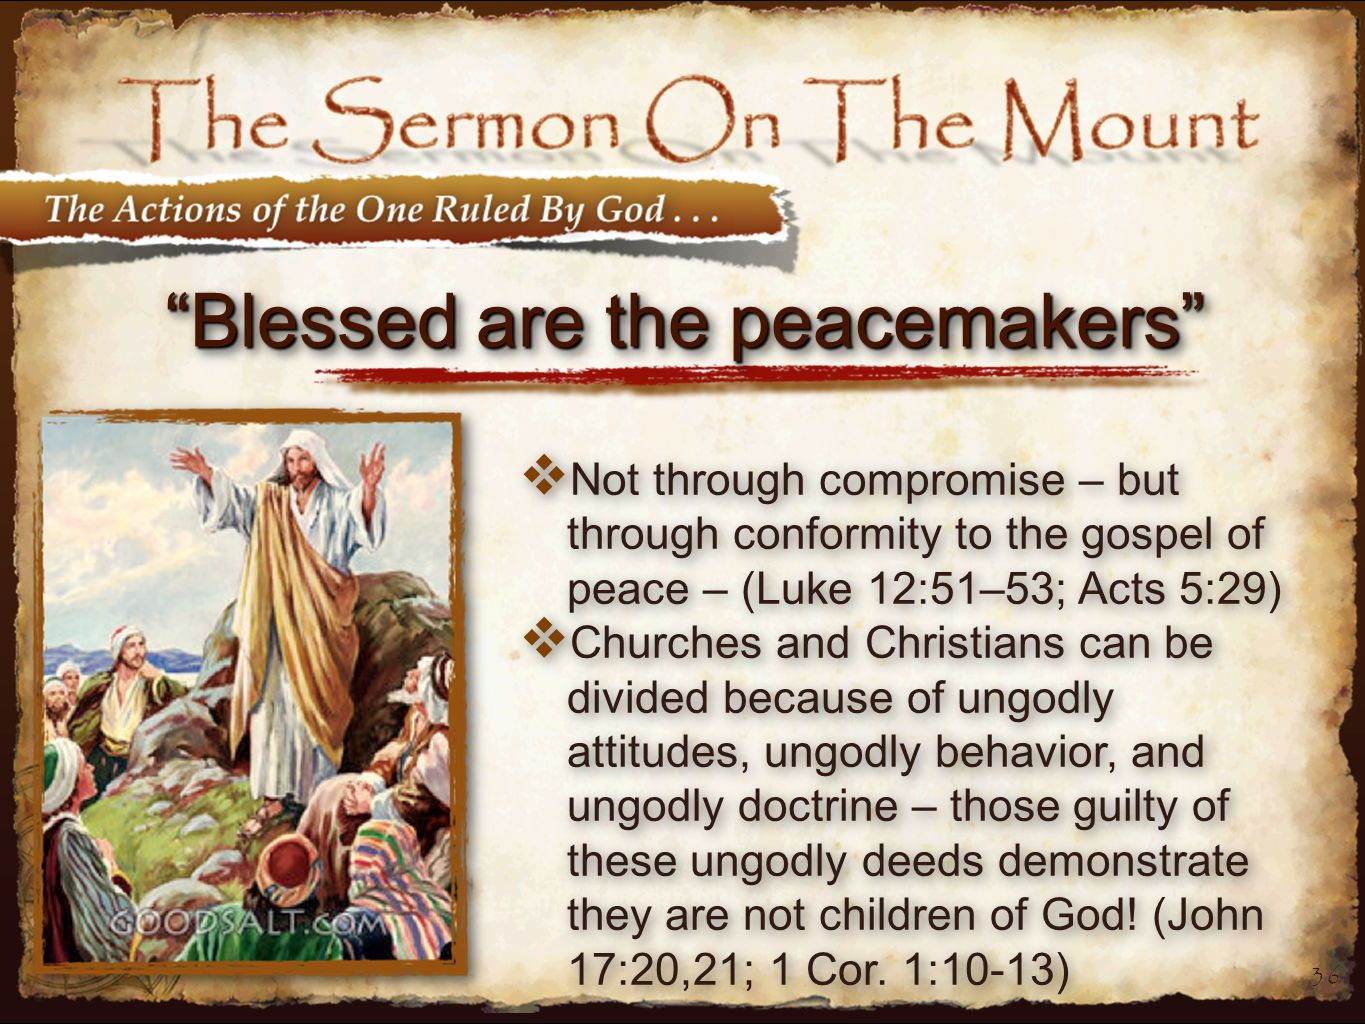 36 Blessed are the peacemakers  Not through compromise – but through conformity to the gospel of peace – (Luke 12:51–53; Acts 5:29)  Churches and Christians can be divided because of ungodly attitudes, ungodly behavior, and ungodly doctrine – those guilty of these ungodly deeds demonstrate they are not children of God.